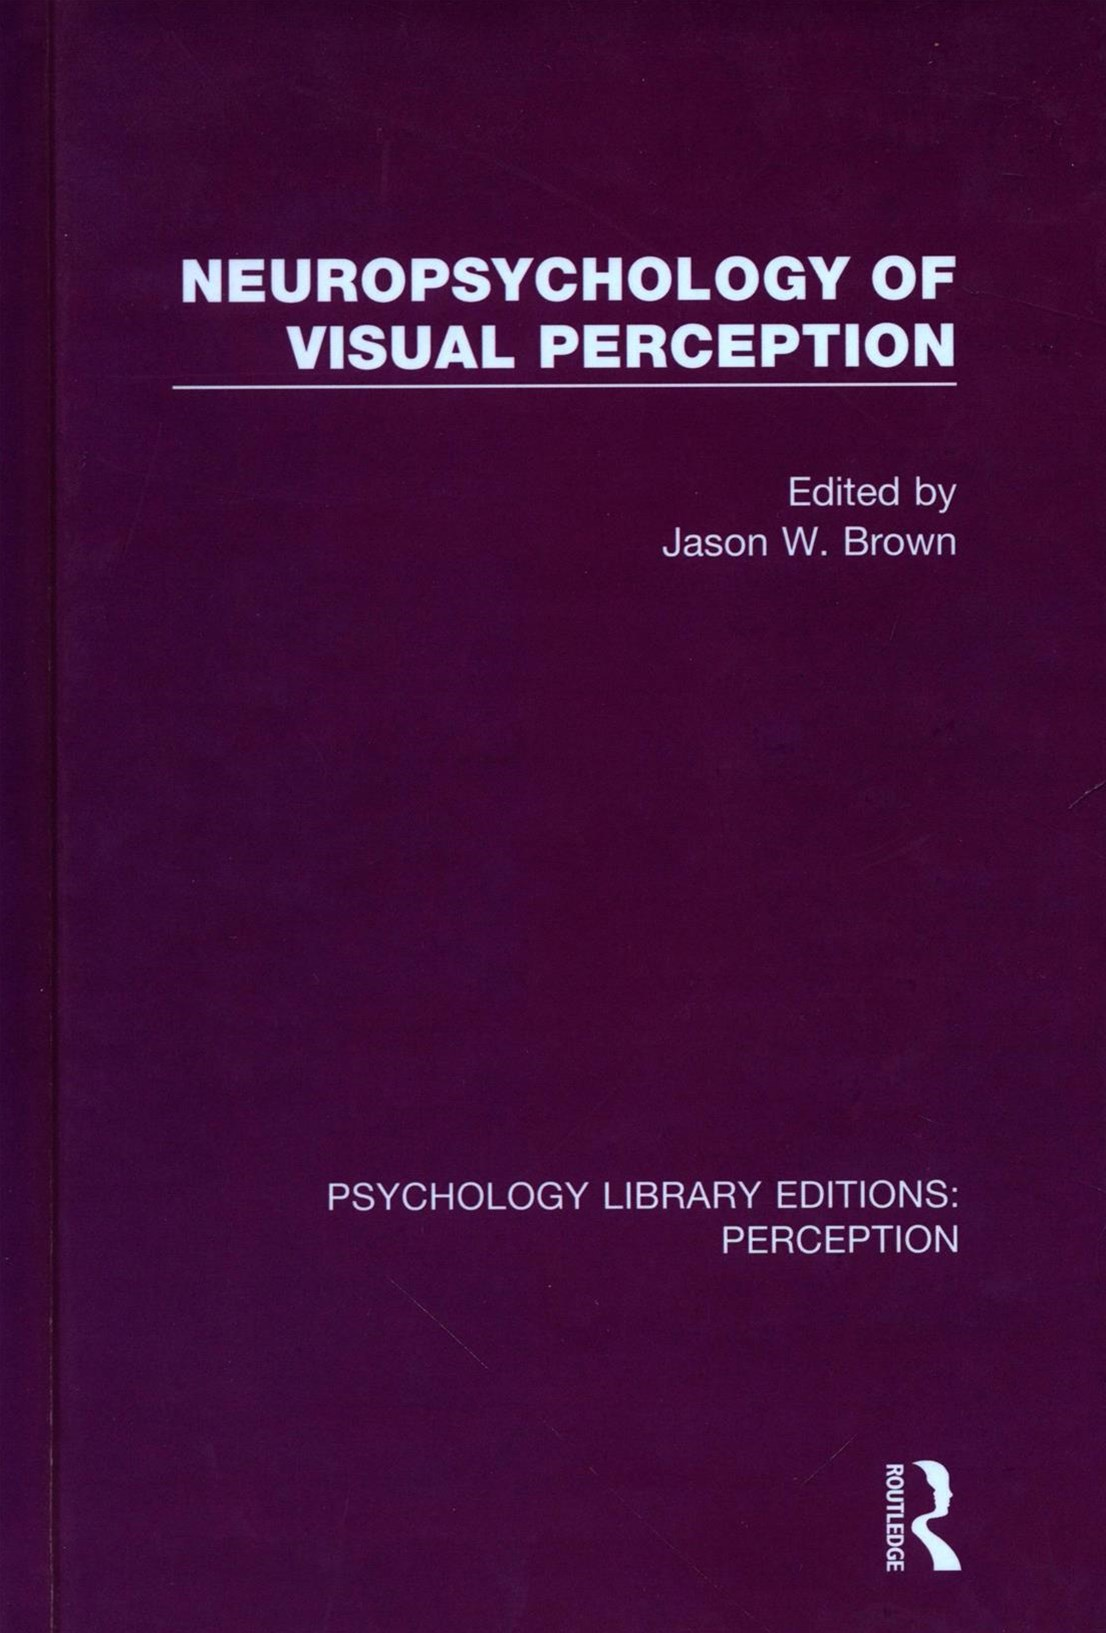 Neuropsychology of Visual Perception